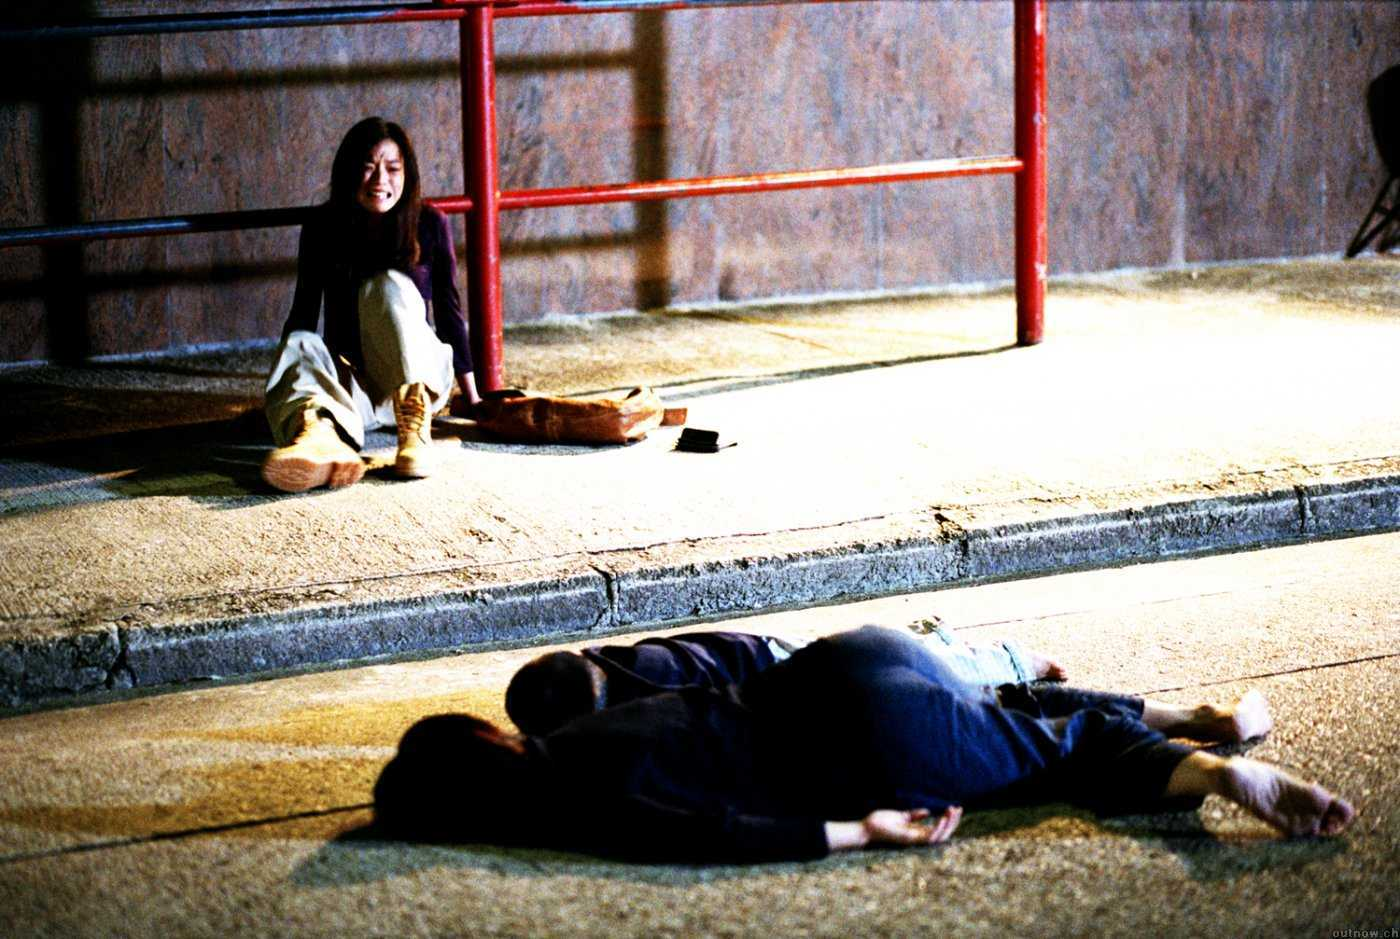 Shu Qi on a bus stop with the bodies of two boys in front of her in The Eye 2 (2004)